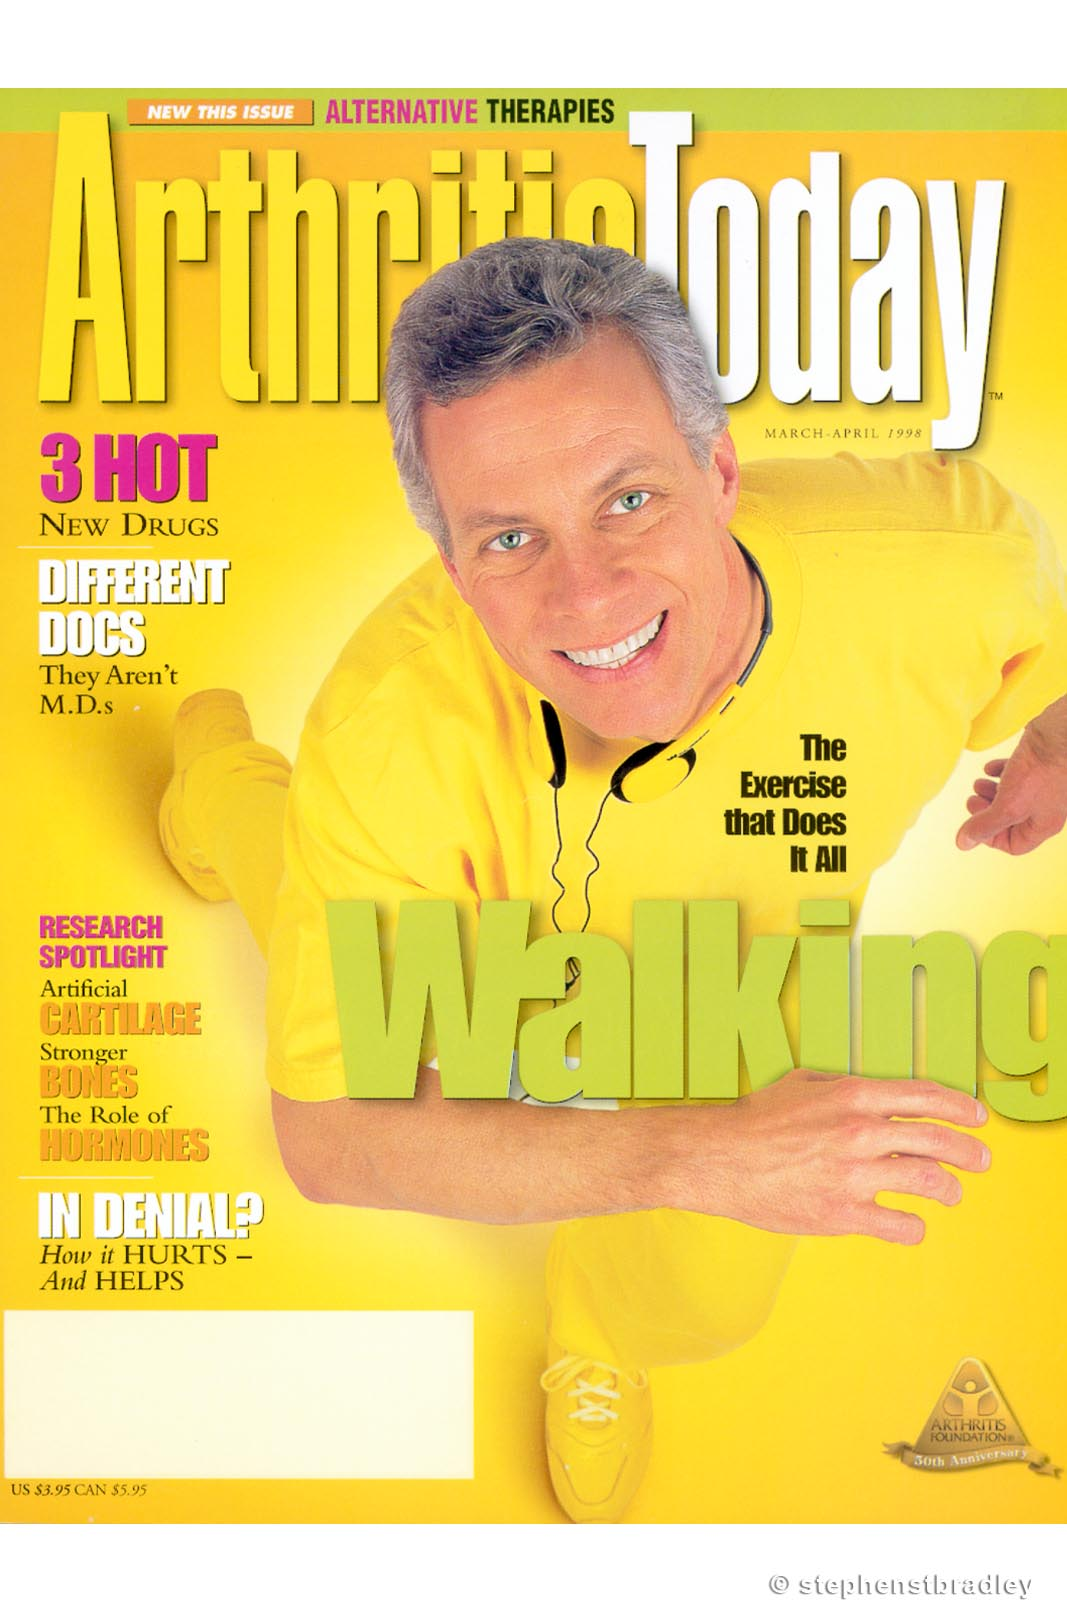 Editorial photography portfolio photo of man in yellow clothes and shoes photographed for Arthritis Today magazine - magazine cover photo by Stephen S T Bradley